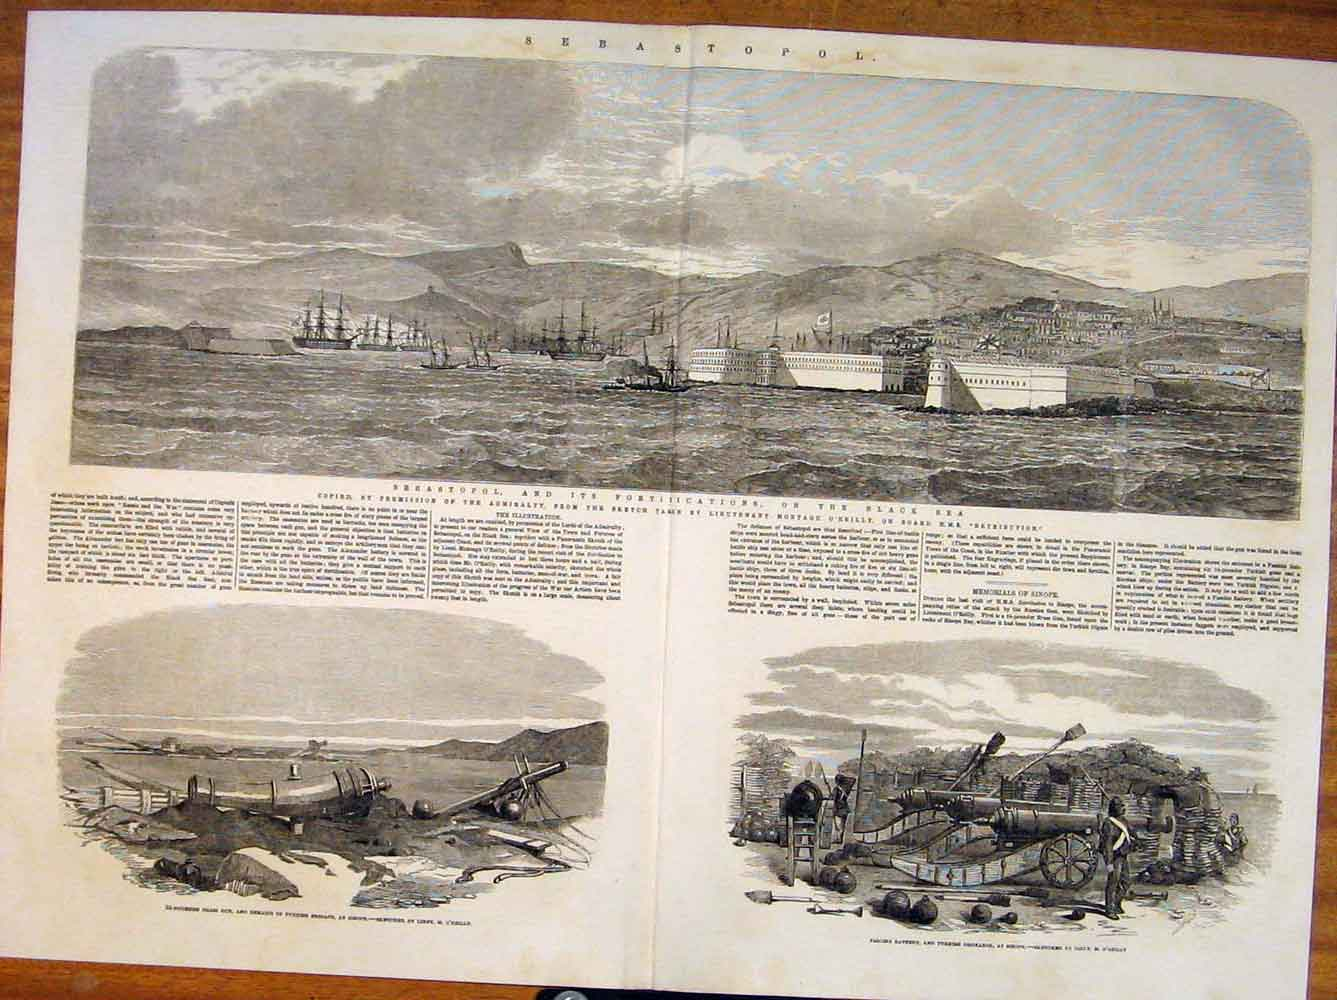 Print Sebastopol Black Sea Admiralty Turkish O'Reilly Guns 23Tmaa0 Old Original